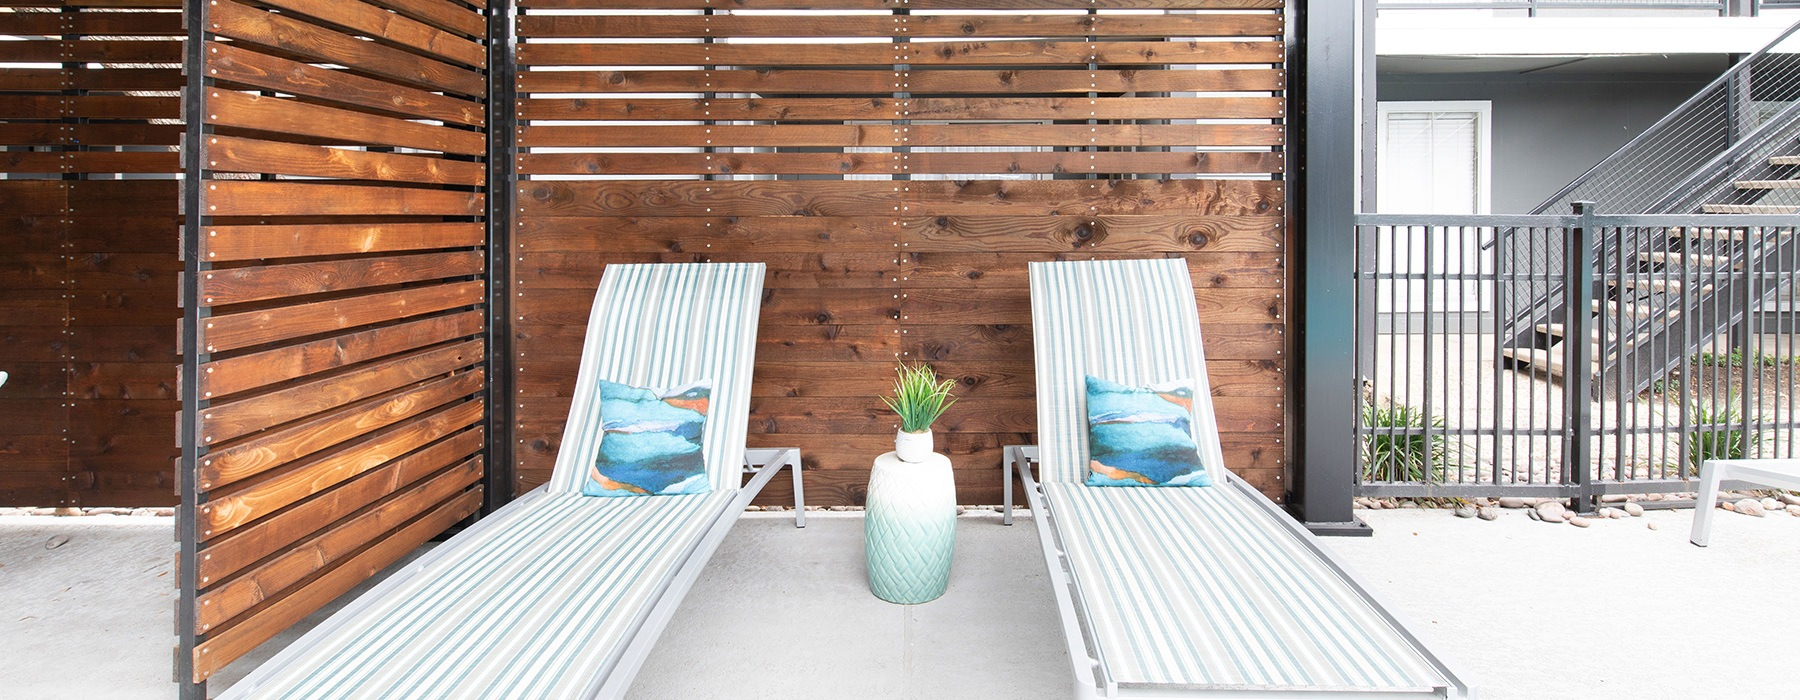 Private Cabana with two lounge chairs